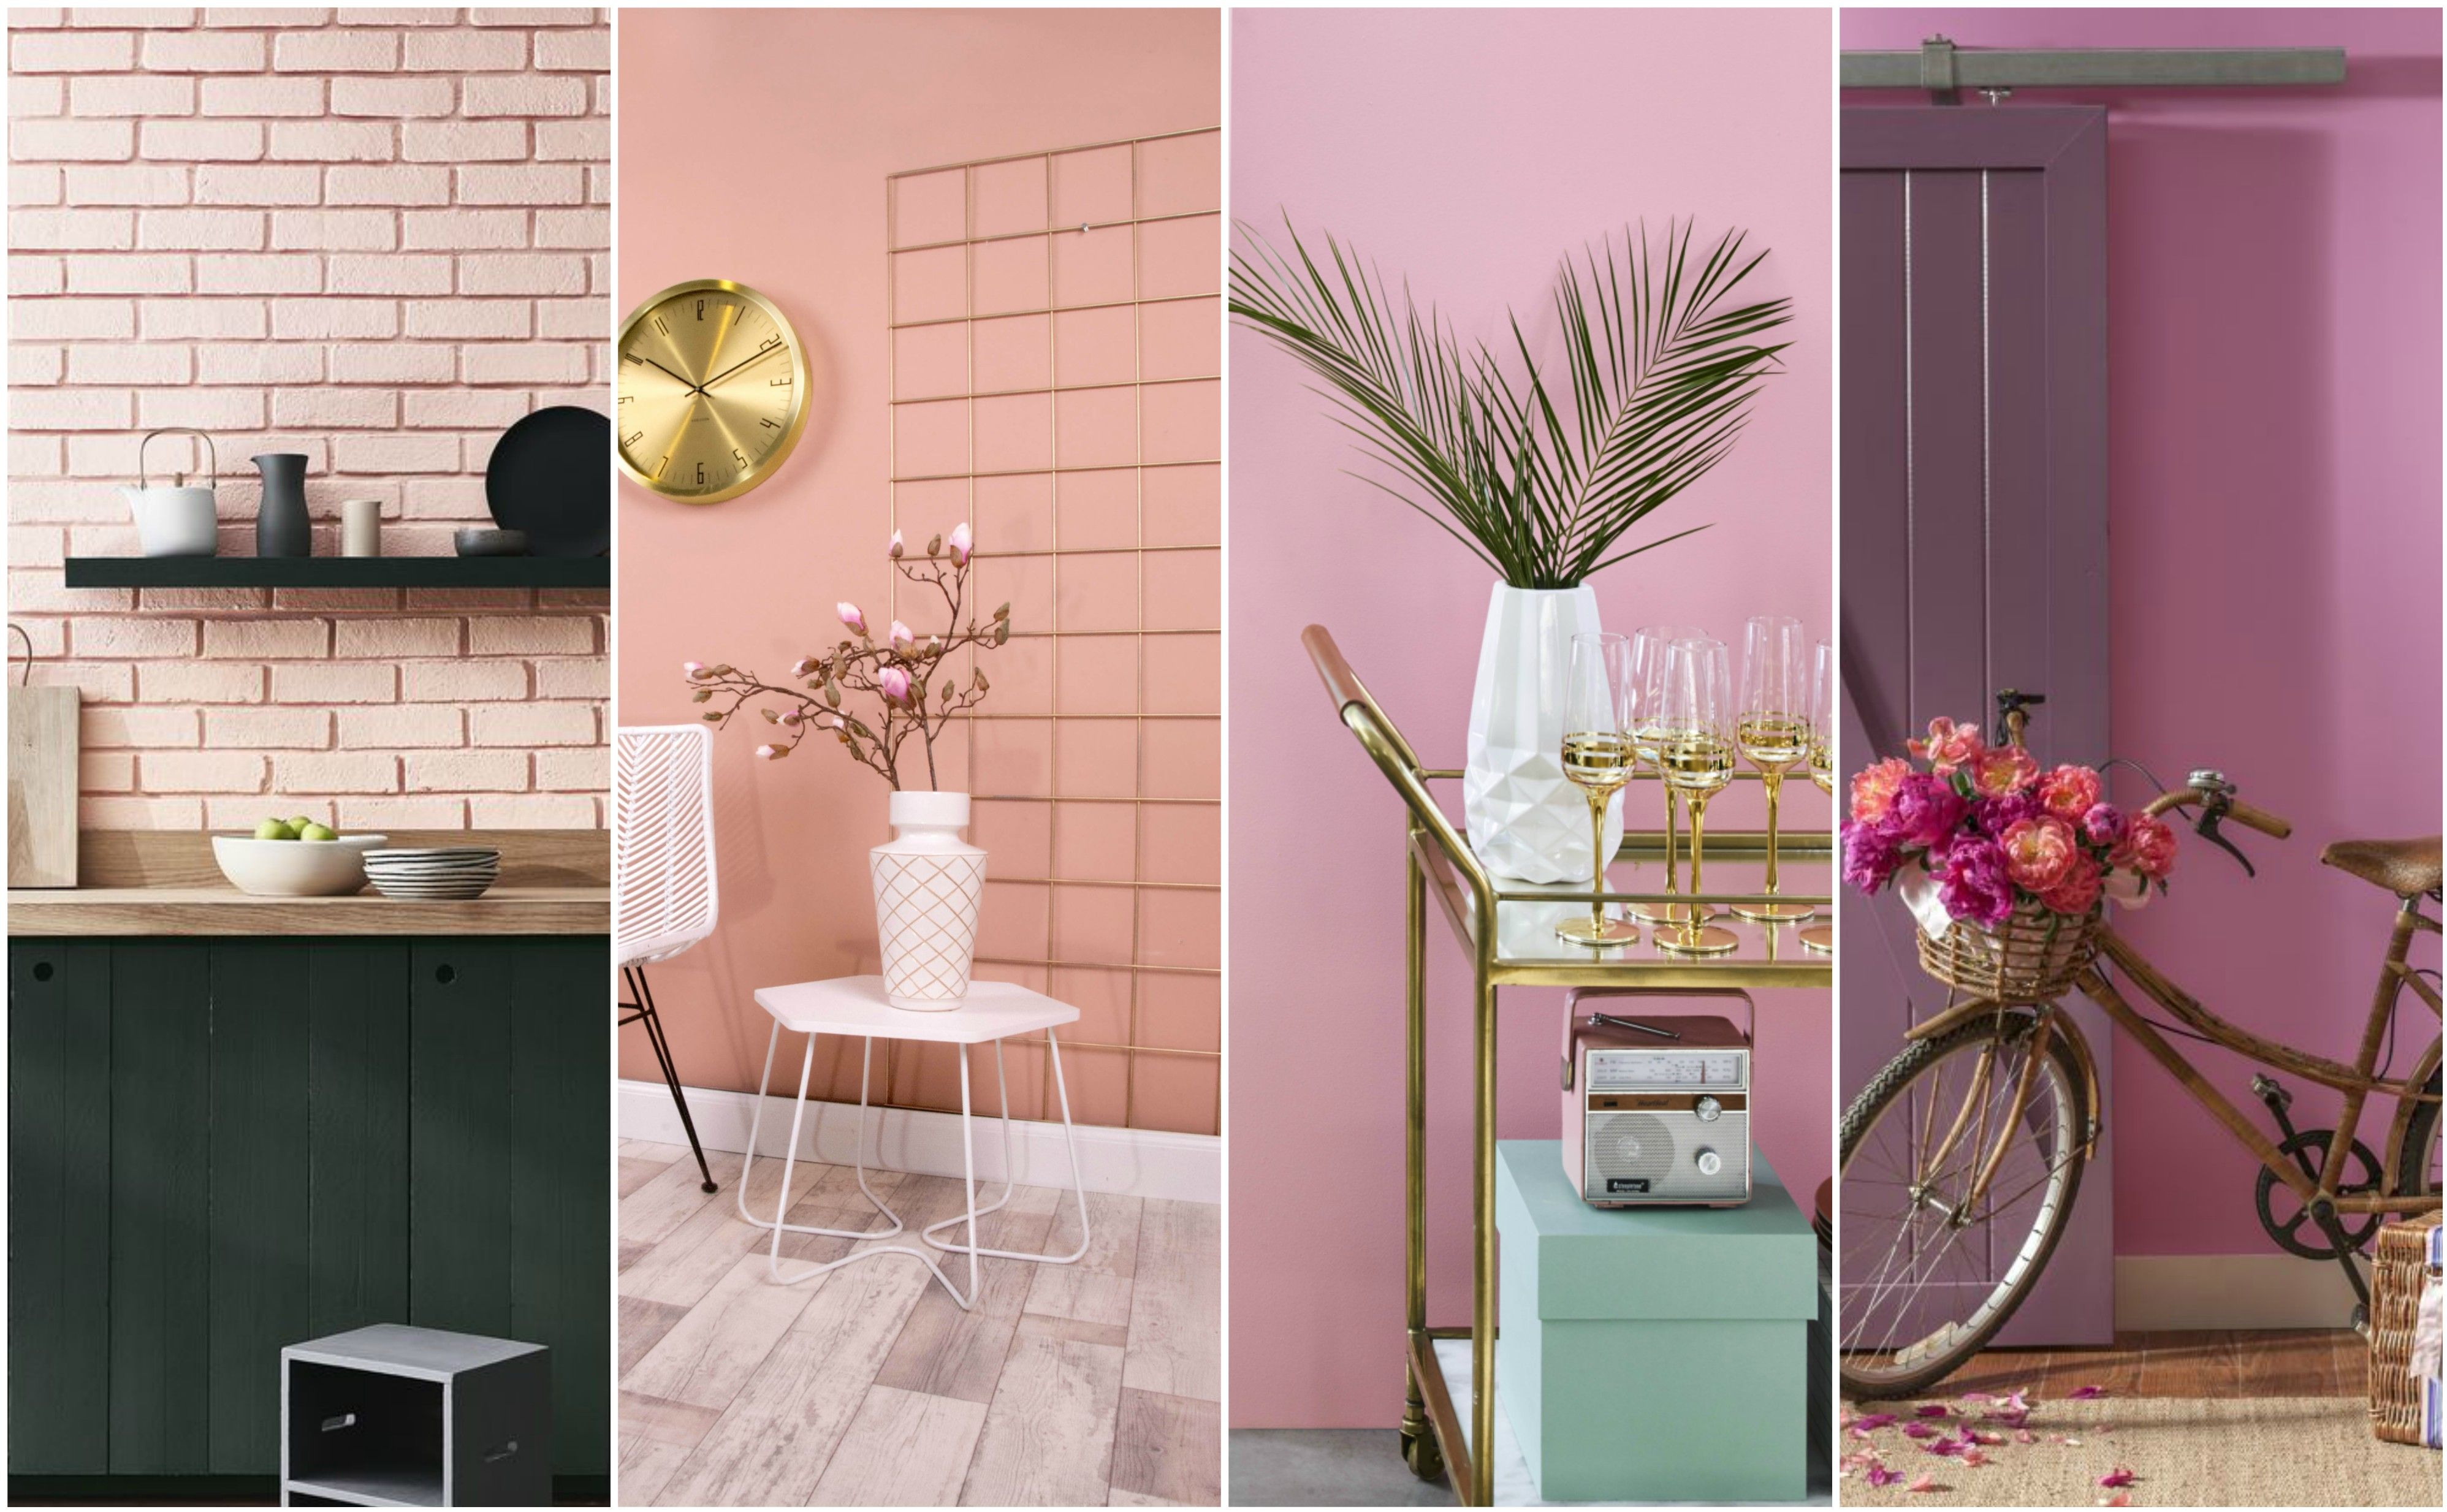 Millennial Pink - How To Make It Work For Adults